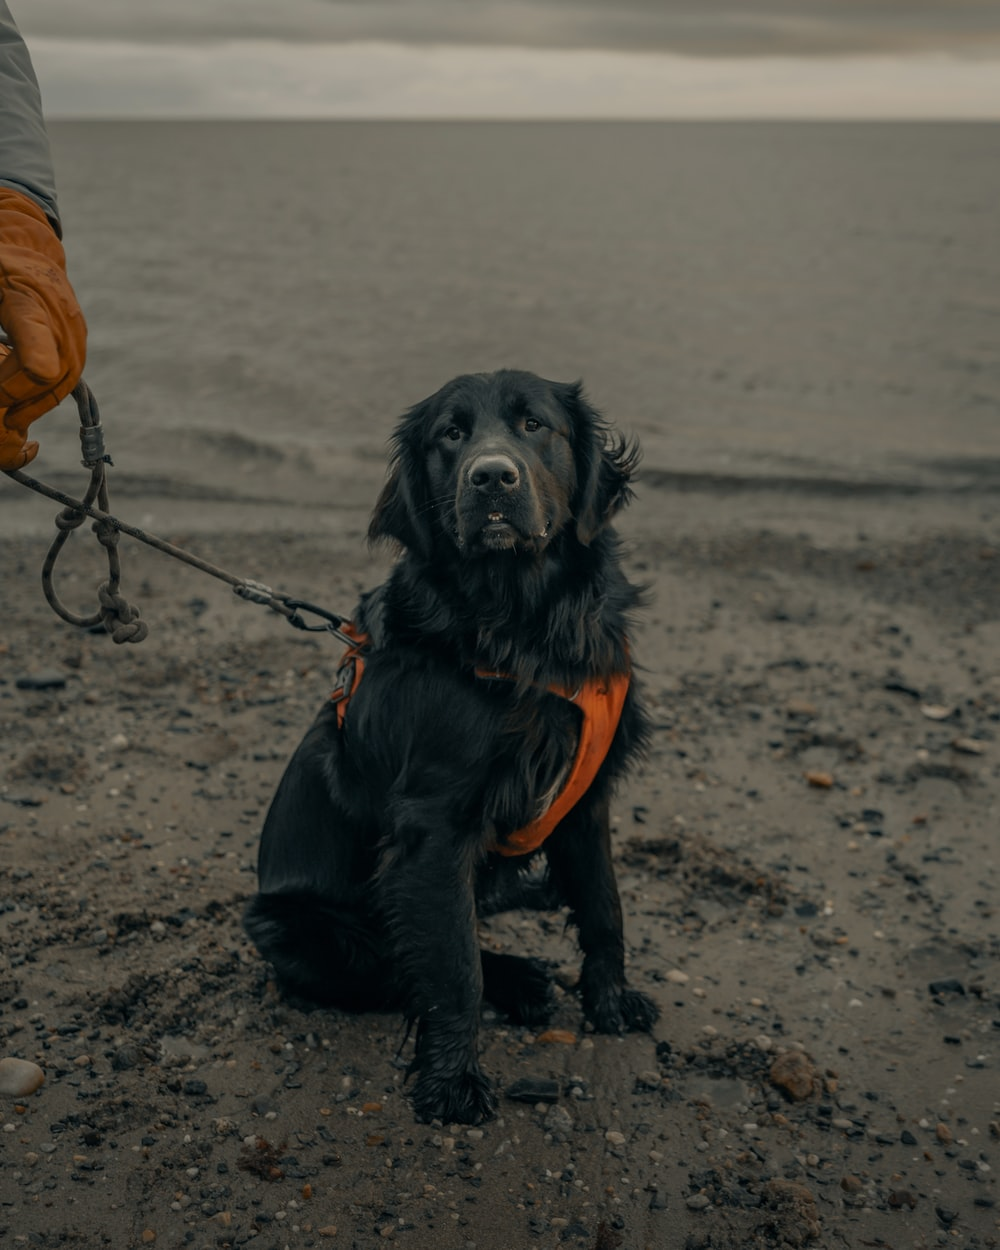 black long coated dog with orange shirt and black pants sitting on brown sand during daytime